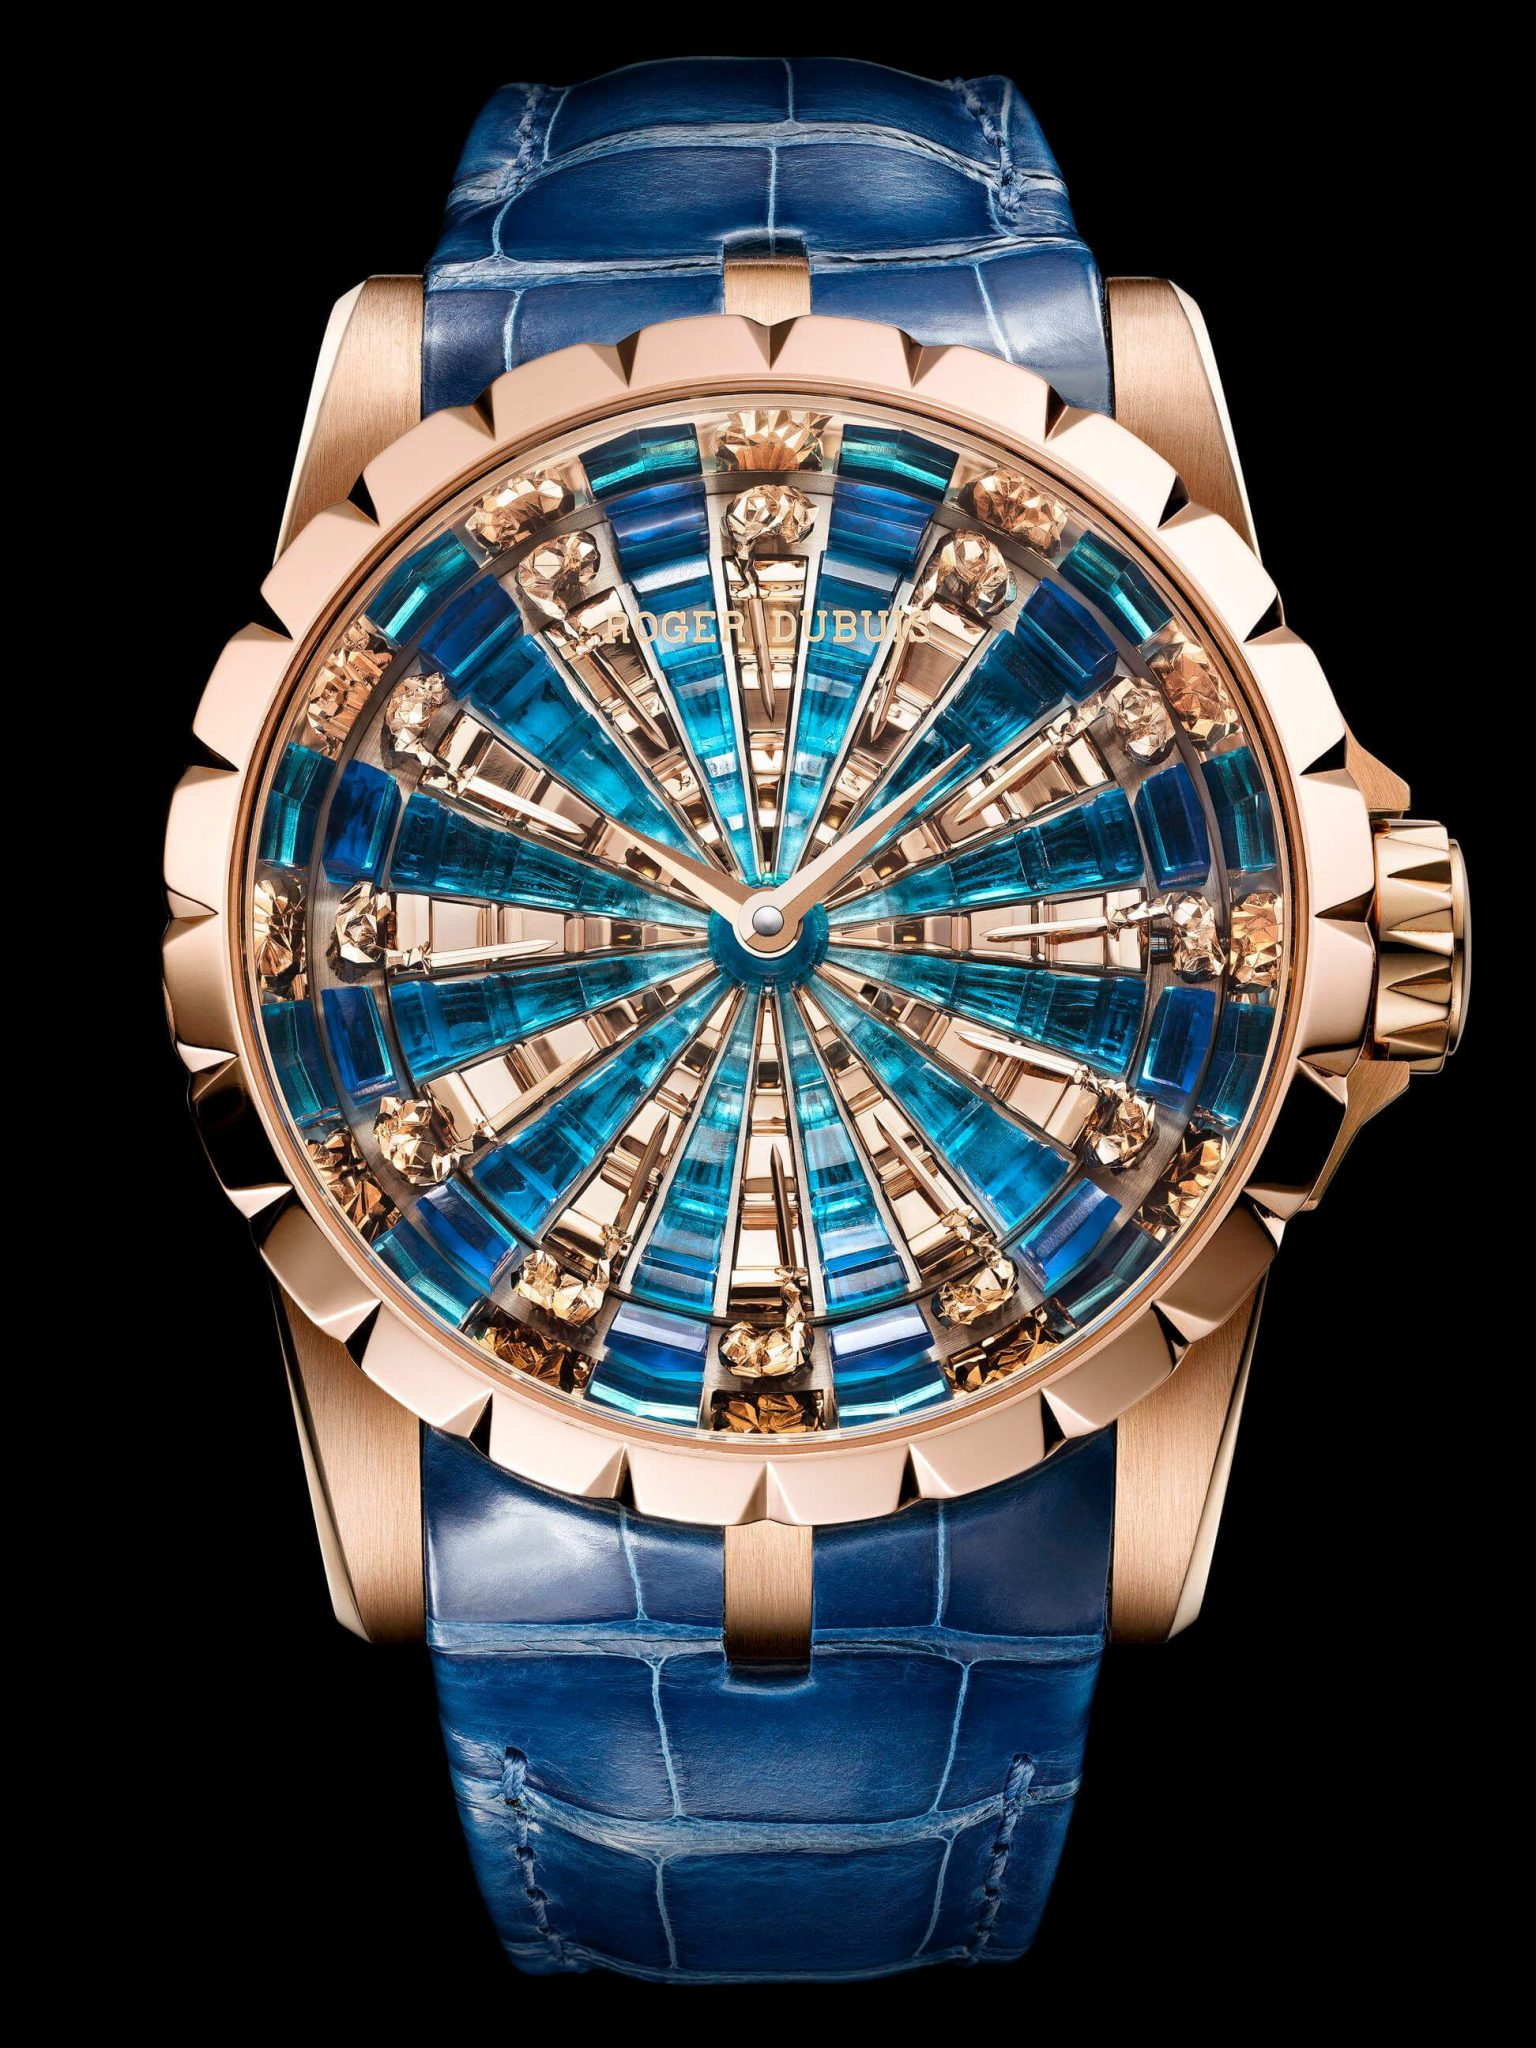 Roger Dubuis Excalibur 2141-rdb-table-ronde-sdt-b-2-1